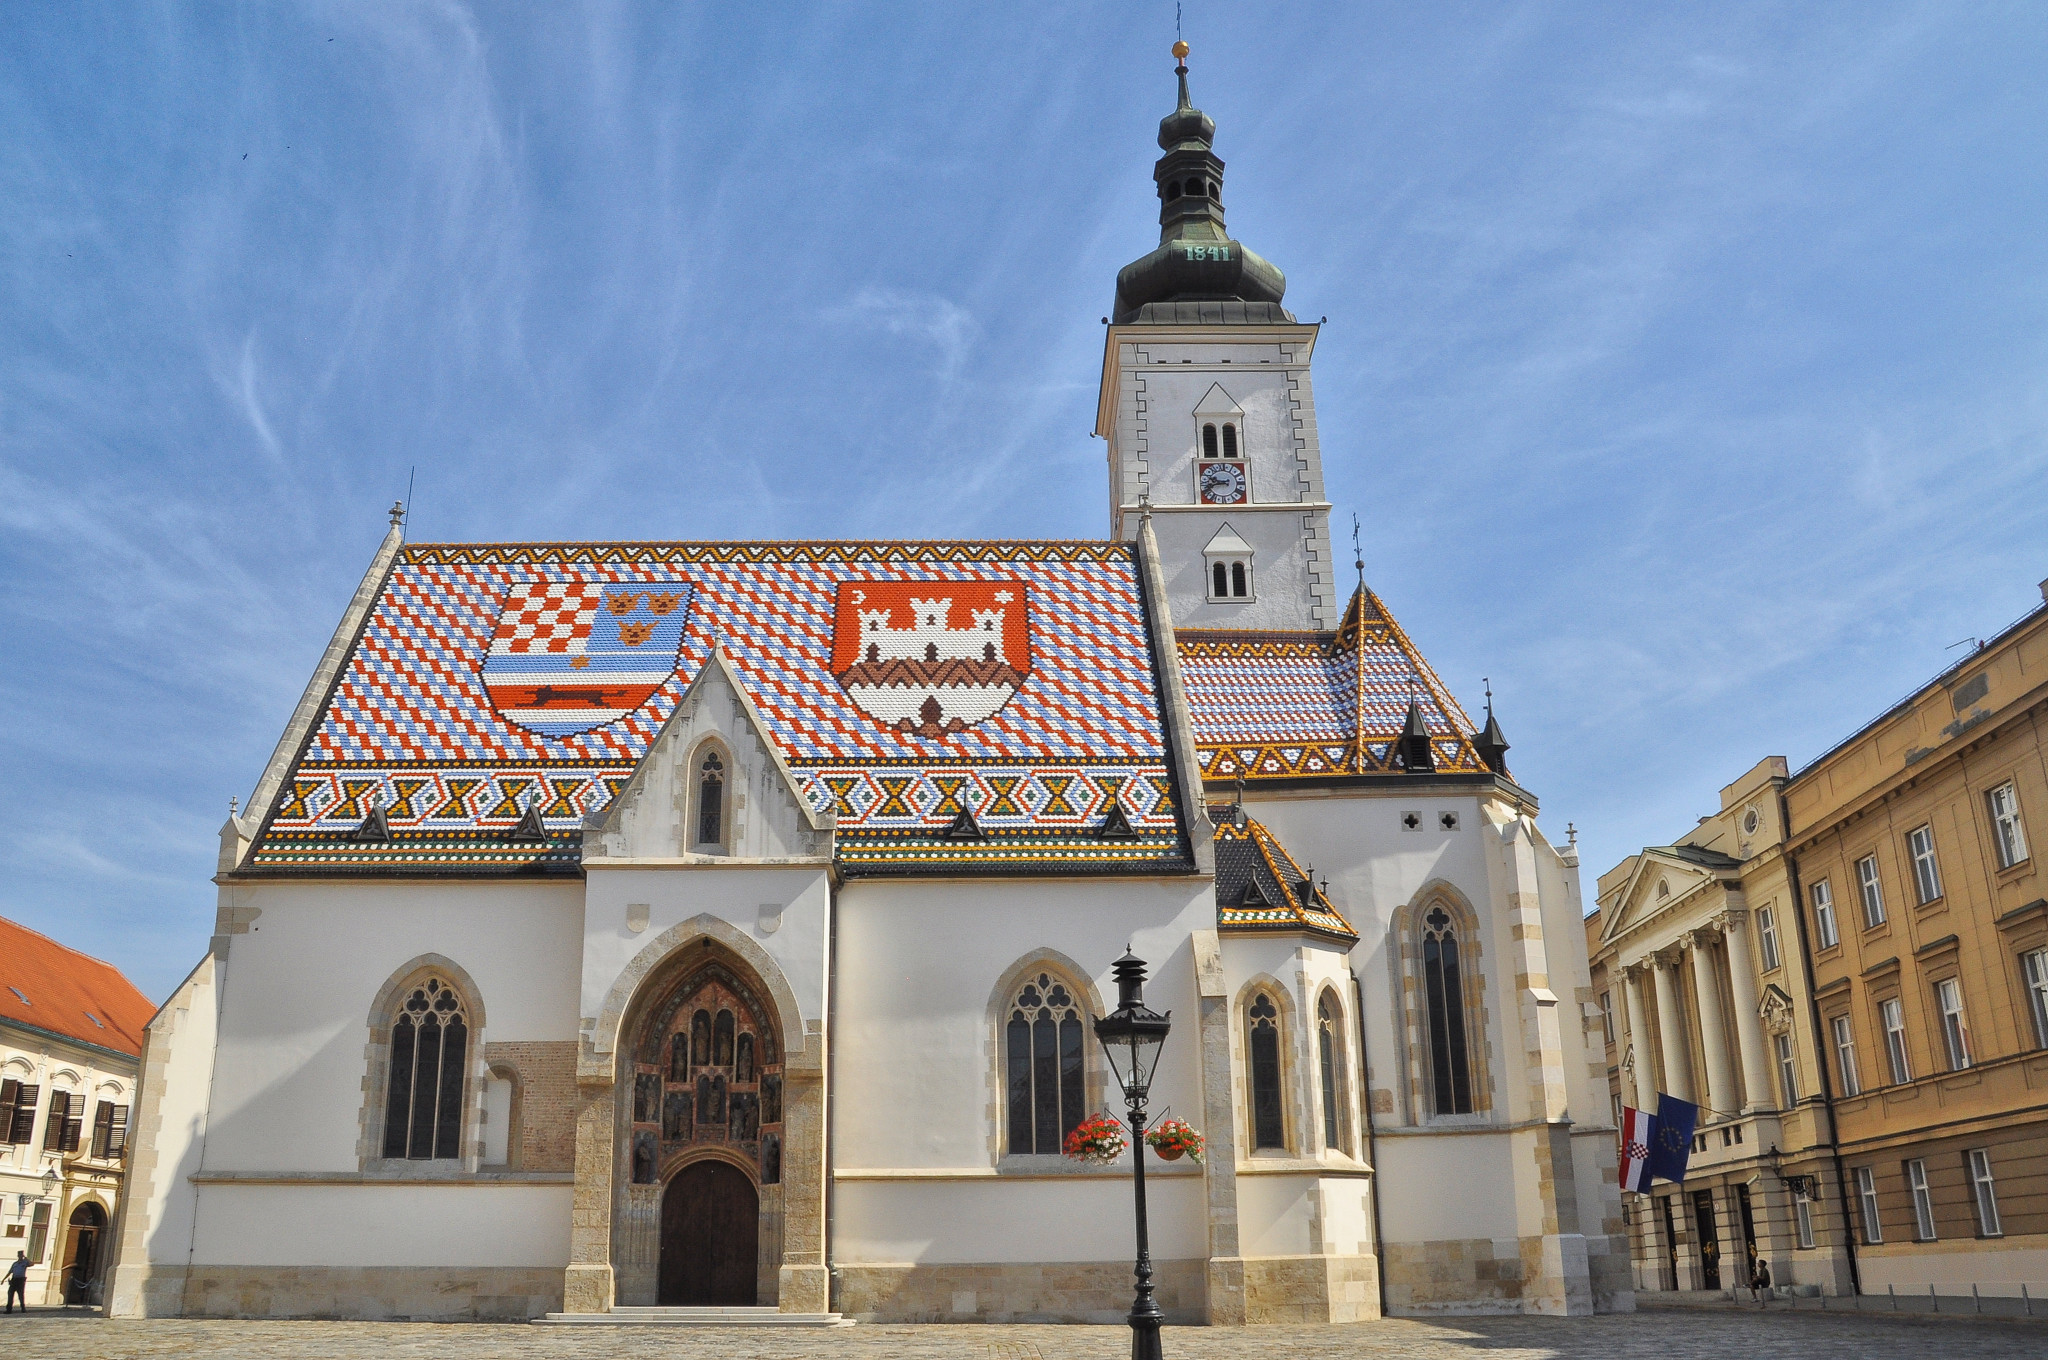 St Mark's Church with its unique colorful roof tiles rendering the coat of arms of Zagreb Croatia